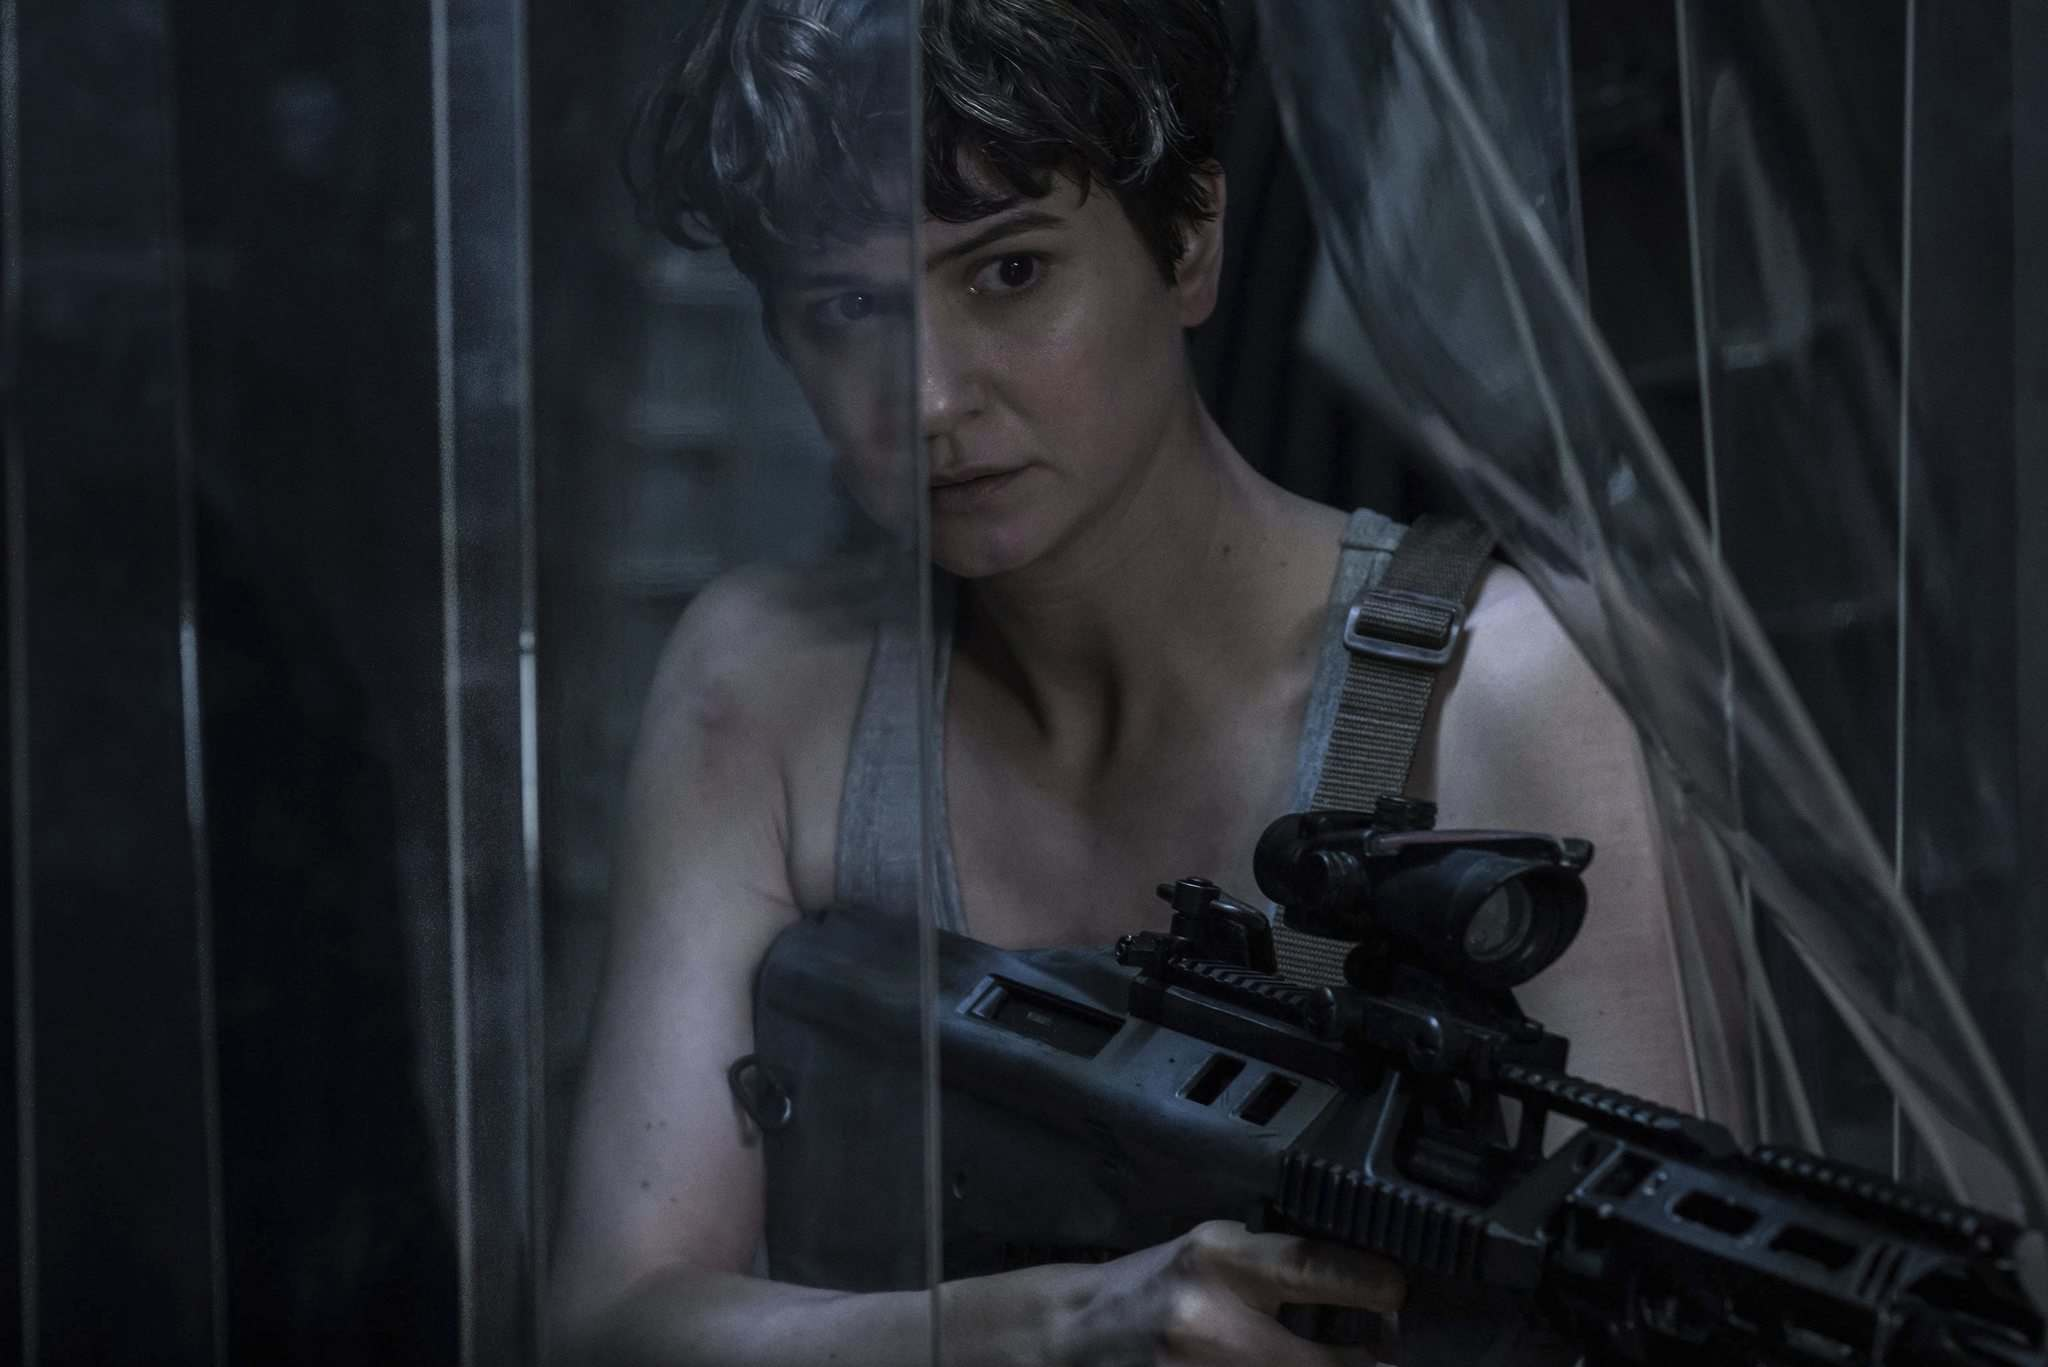 Mark Rogers / Twentieth Century Fox</p><p>Katherine Waterston, as Daniels in Alien: Covenant, is a capable throwback to Sigourney Weaver&rsquo;s character in the original films.</p>